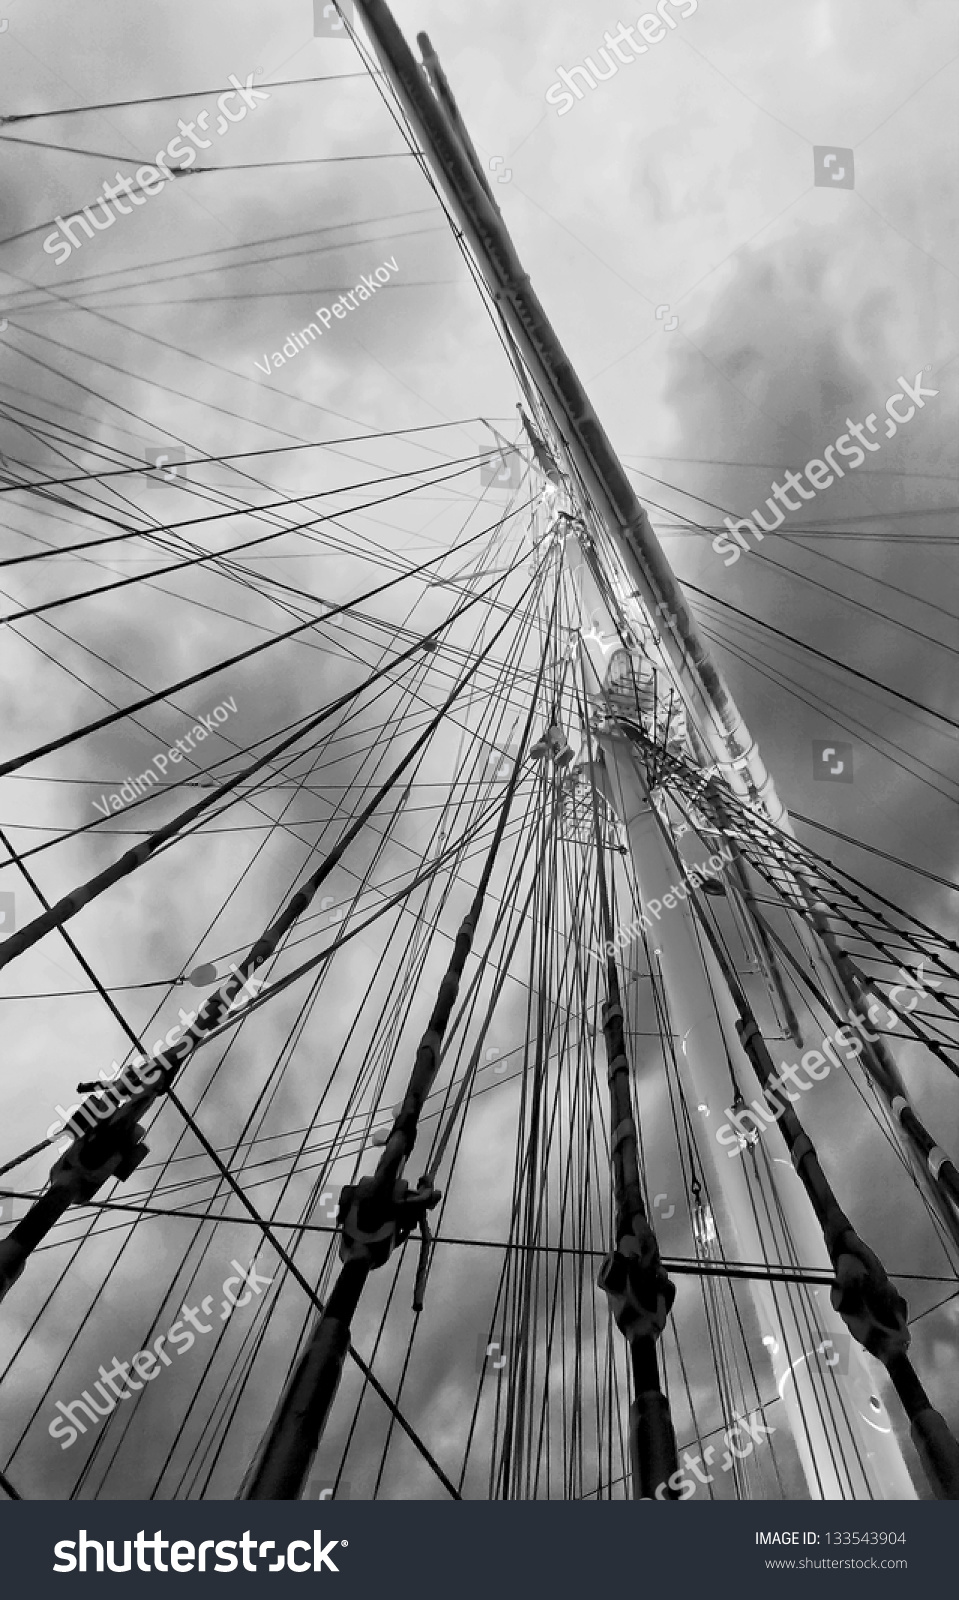 Gear old sailing ship on the background of an overcast sky - Turku, Finland (black and white) #133543904